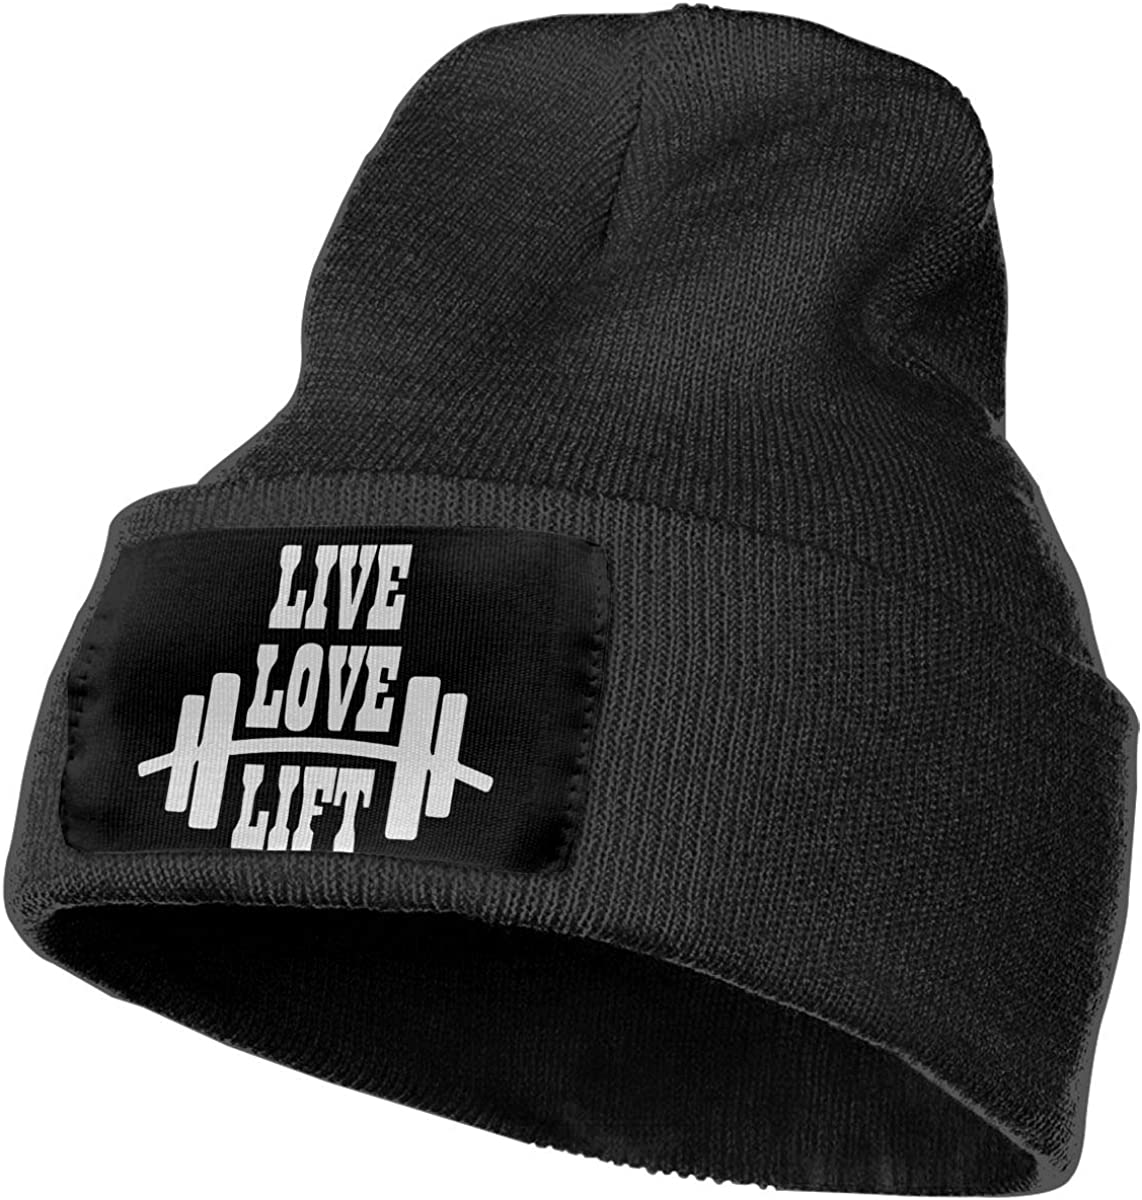 Live Love Lift Warm Skull Cap Unisex 100/% Acrylic Knitted Hat Cap